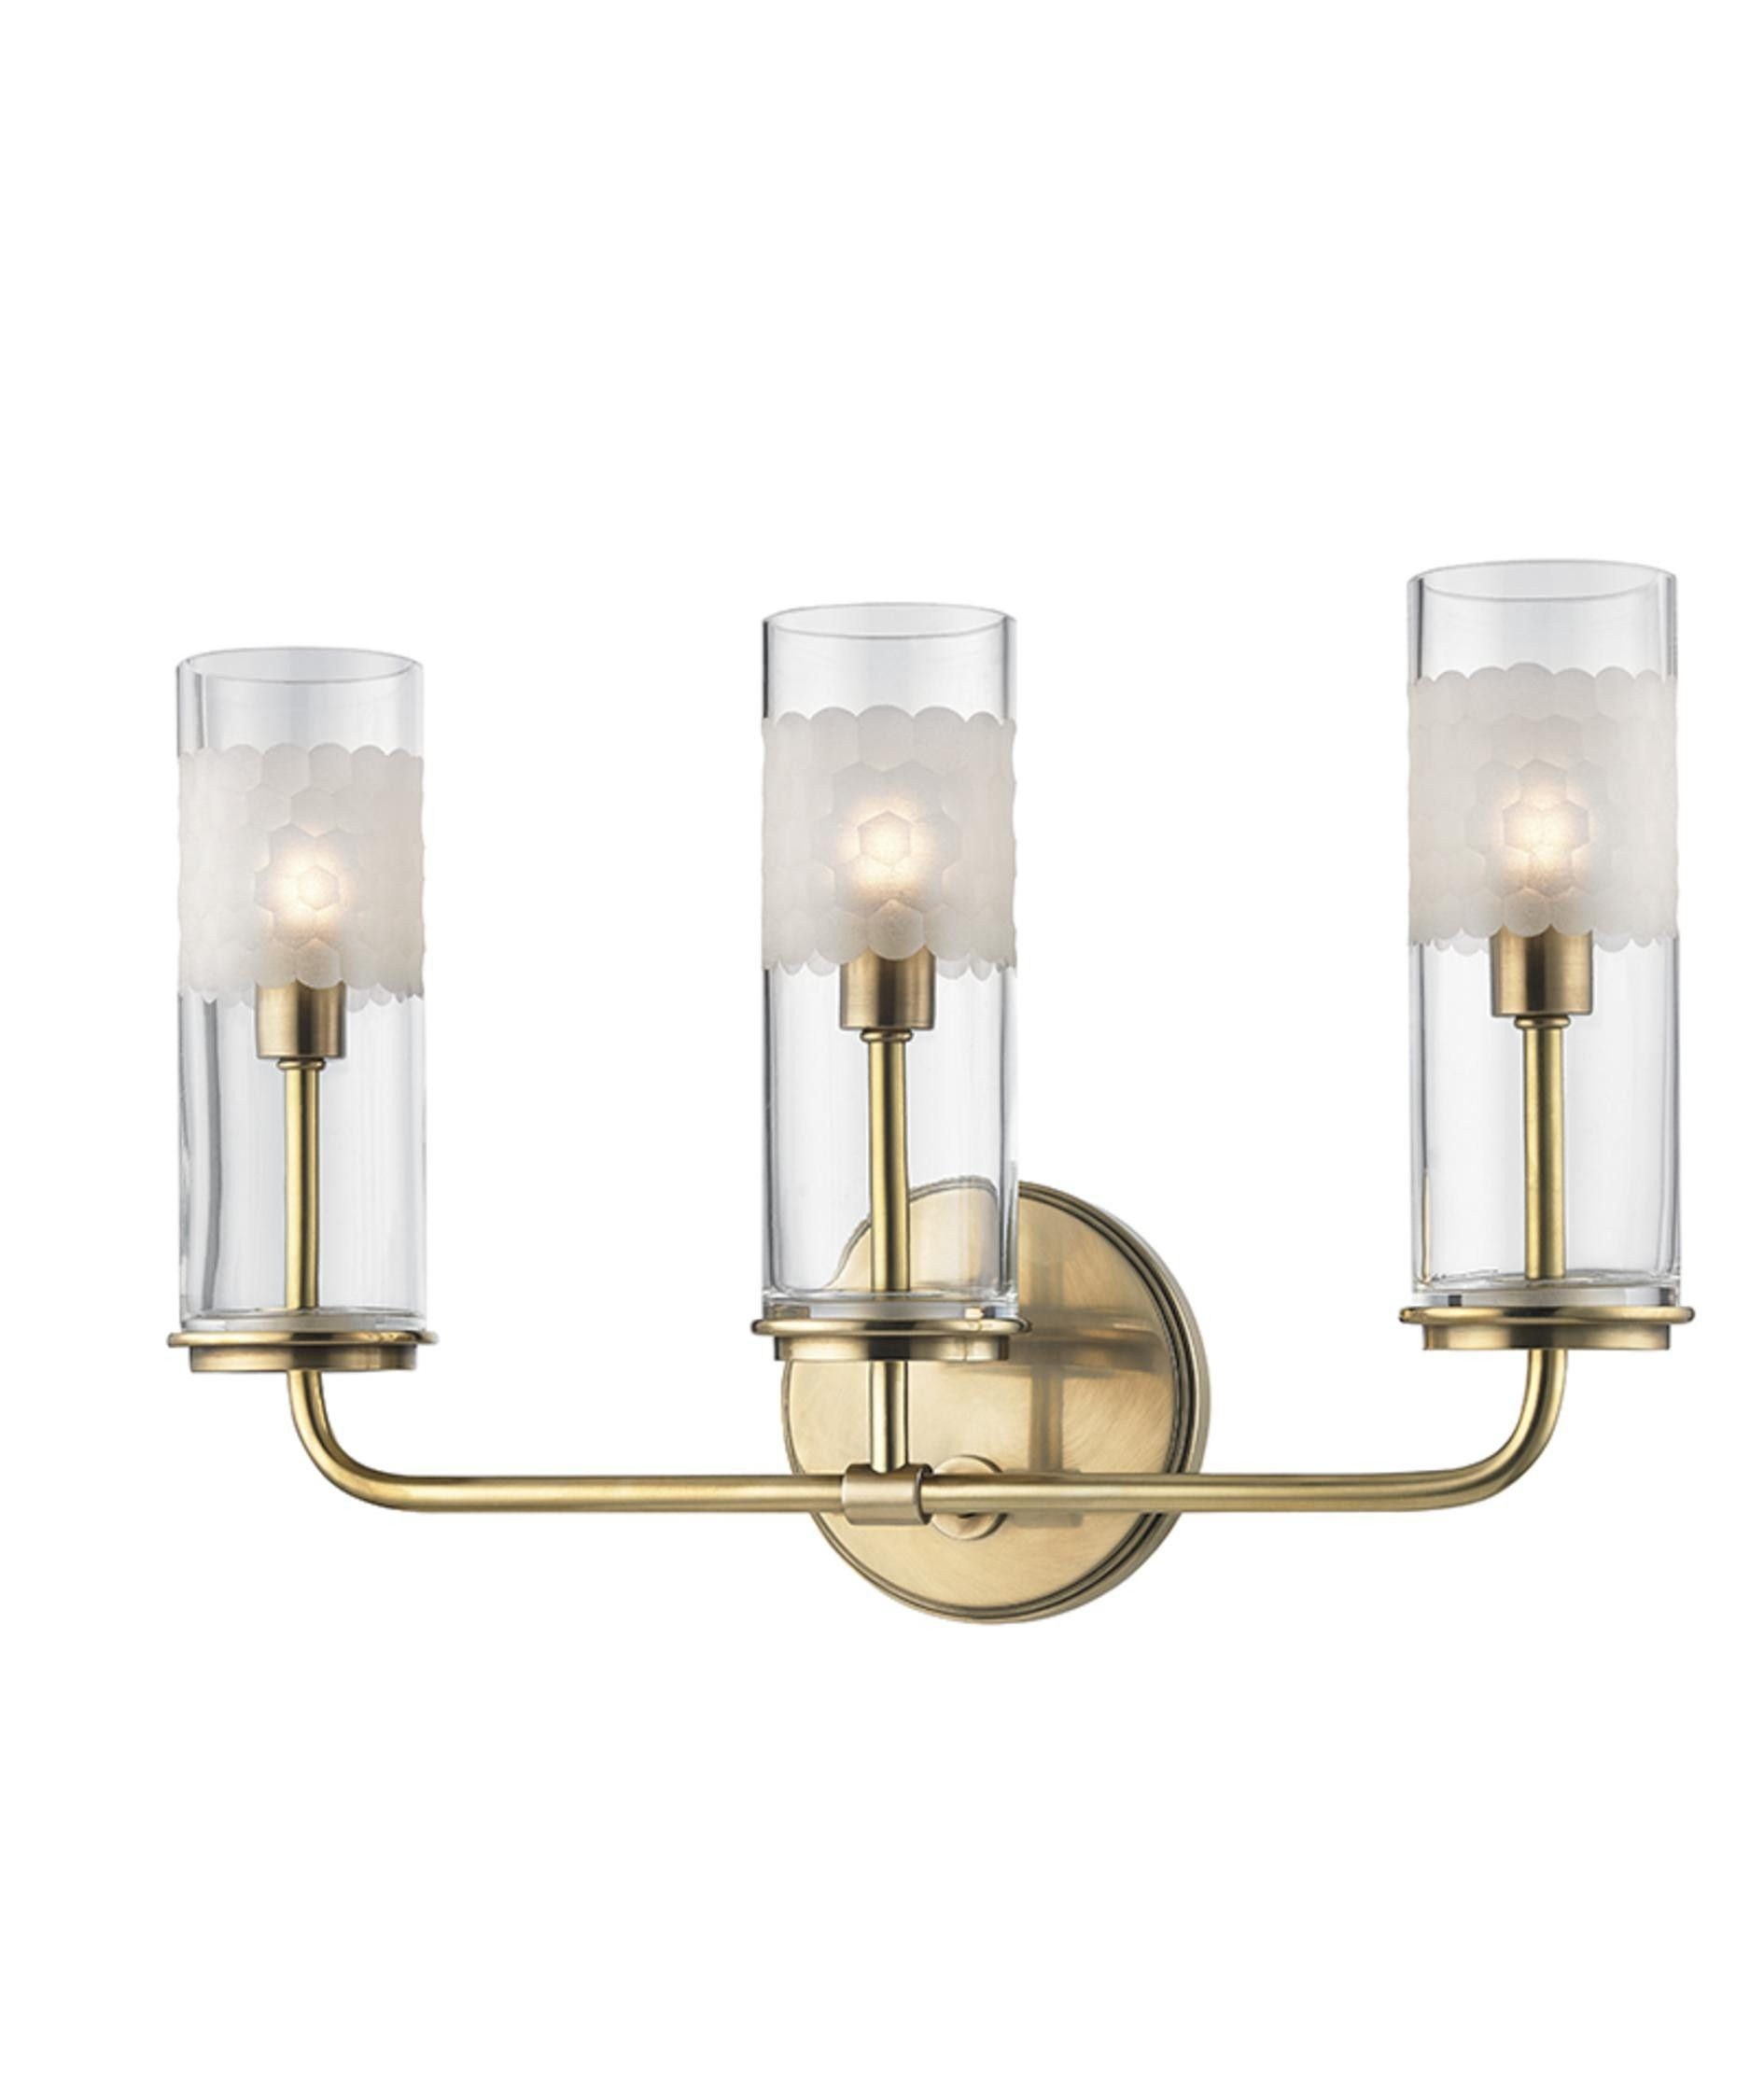 Hanging Bathroom Wall Sconces lighting : bathroom sconce modern sconce hanging chandeliers